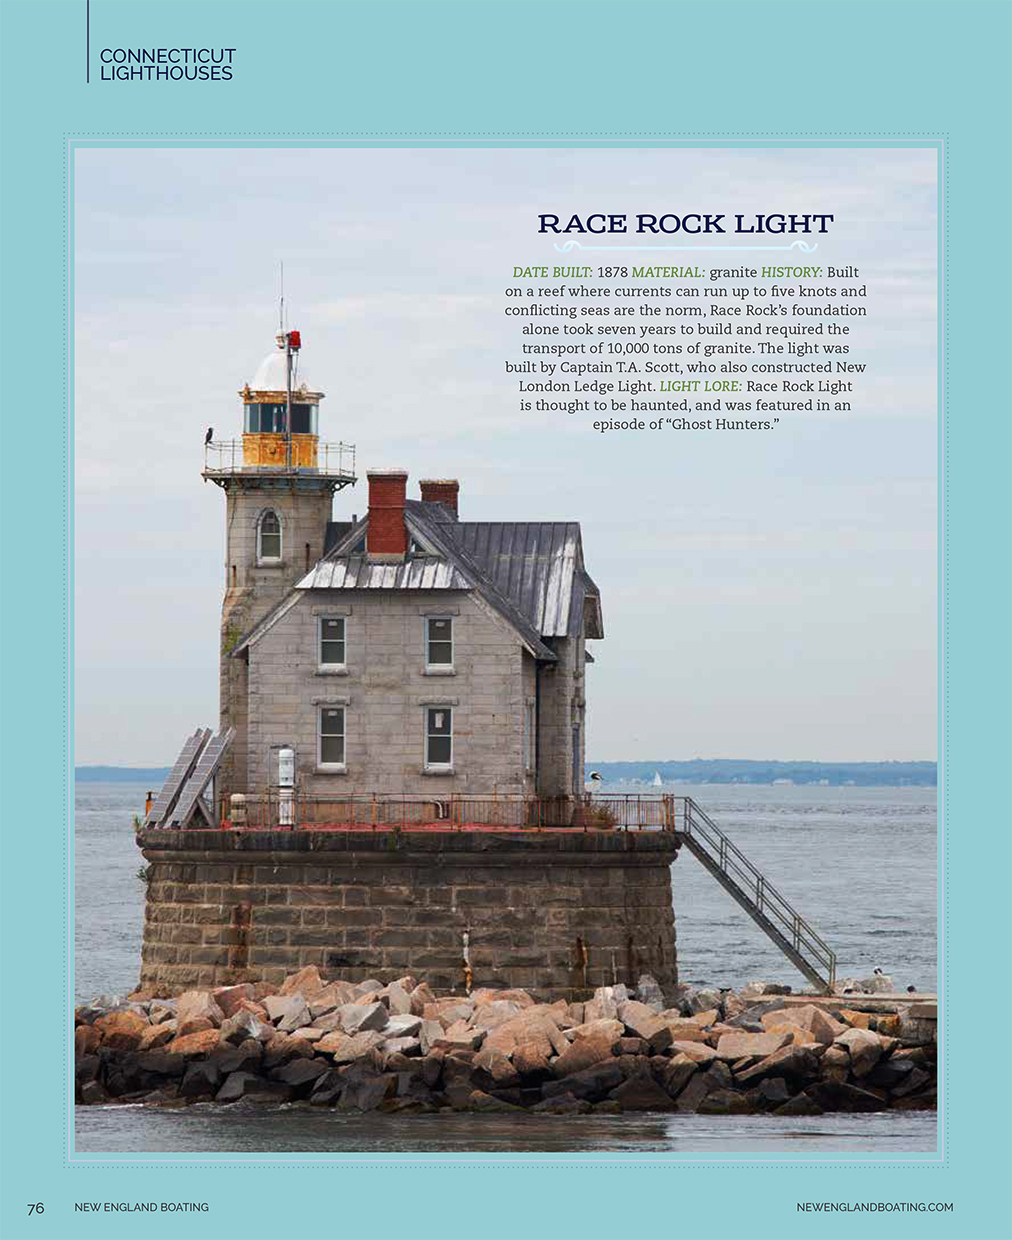 Race-Rock-Light-New-England-Boating-Caryn-B-Davis